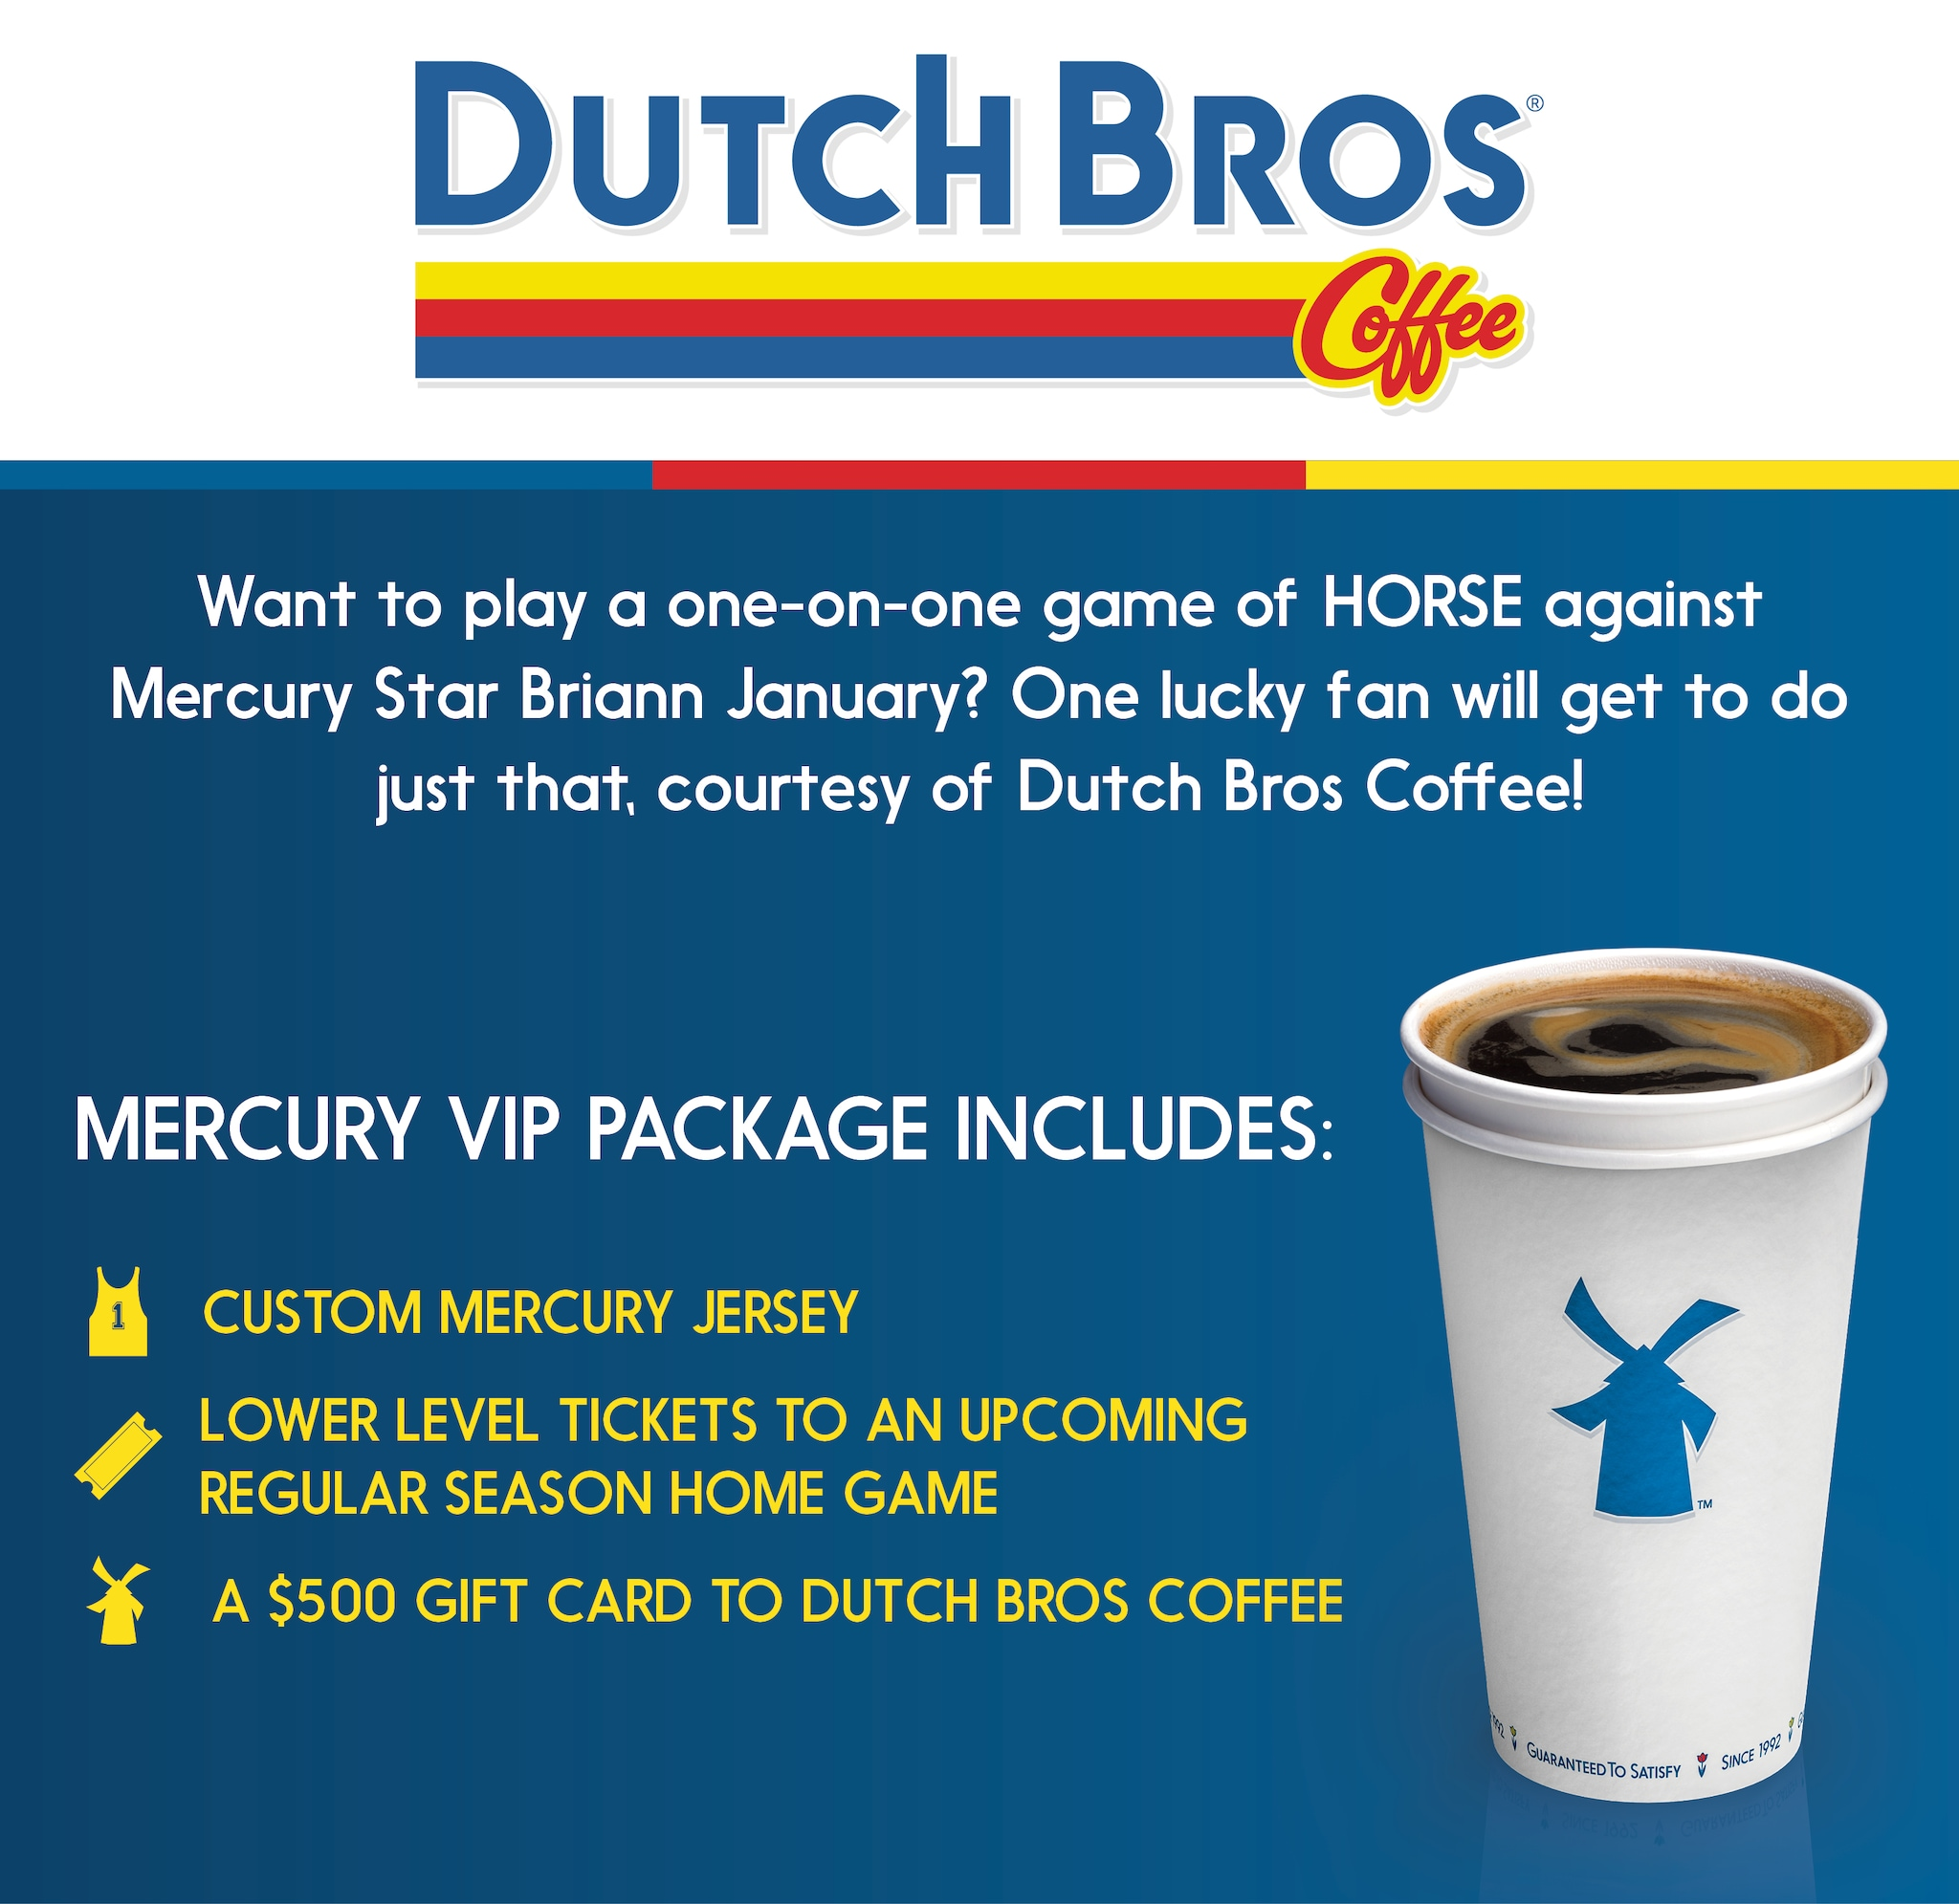 Want to play a one-on-one game of horse against Mercury star Leilani Mitchell? One lucky fan will get to do just that courtesy of Dutch Bros Coffee! Mercury VIP Package Includes: Custom Mercury jersey with your name, Two lower level tickets to the last regular reason home game, An arena VIP tour, A $500 gift card to Dutch Bros Coffee